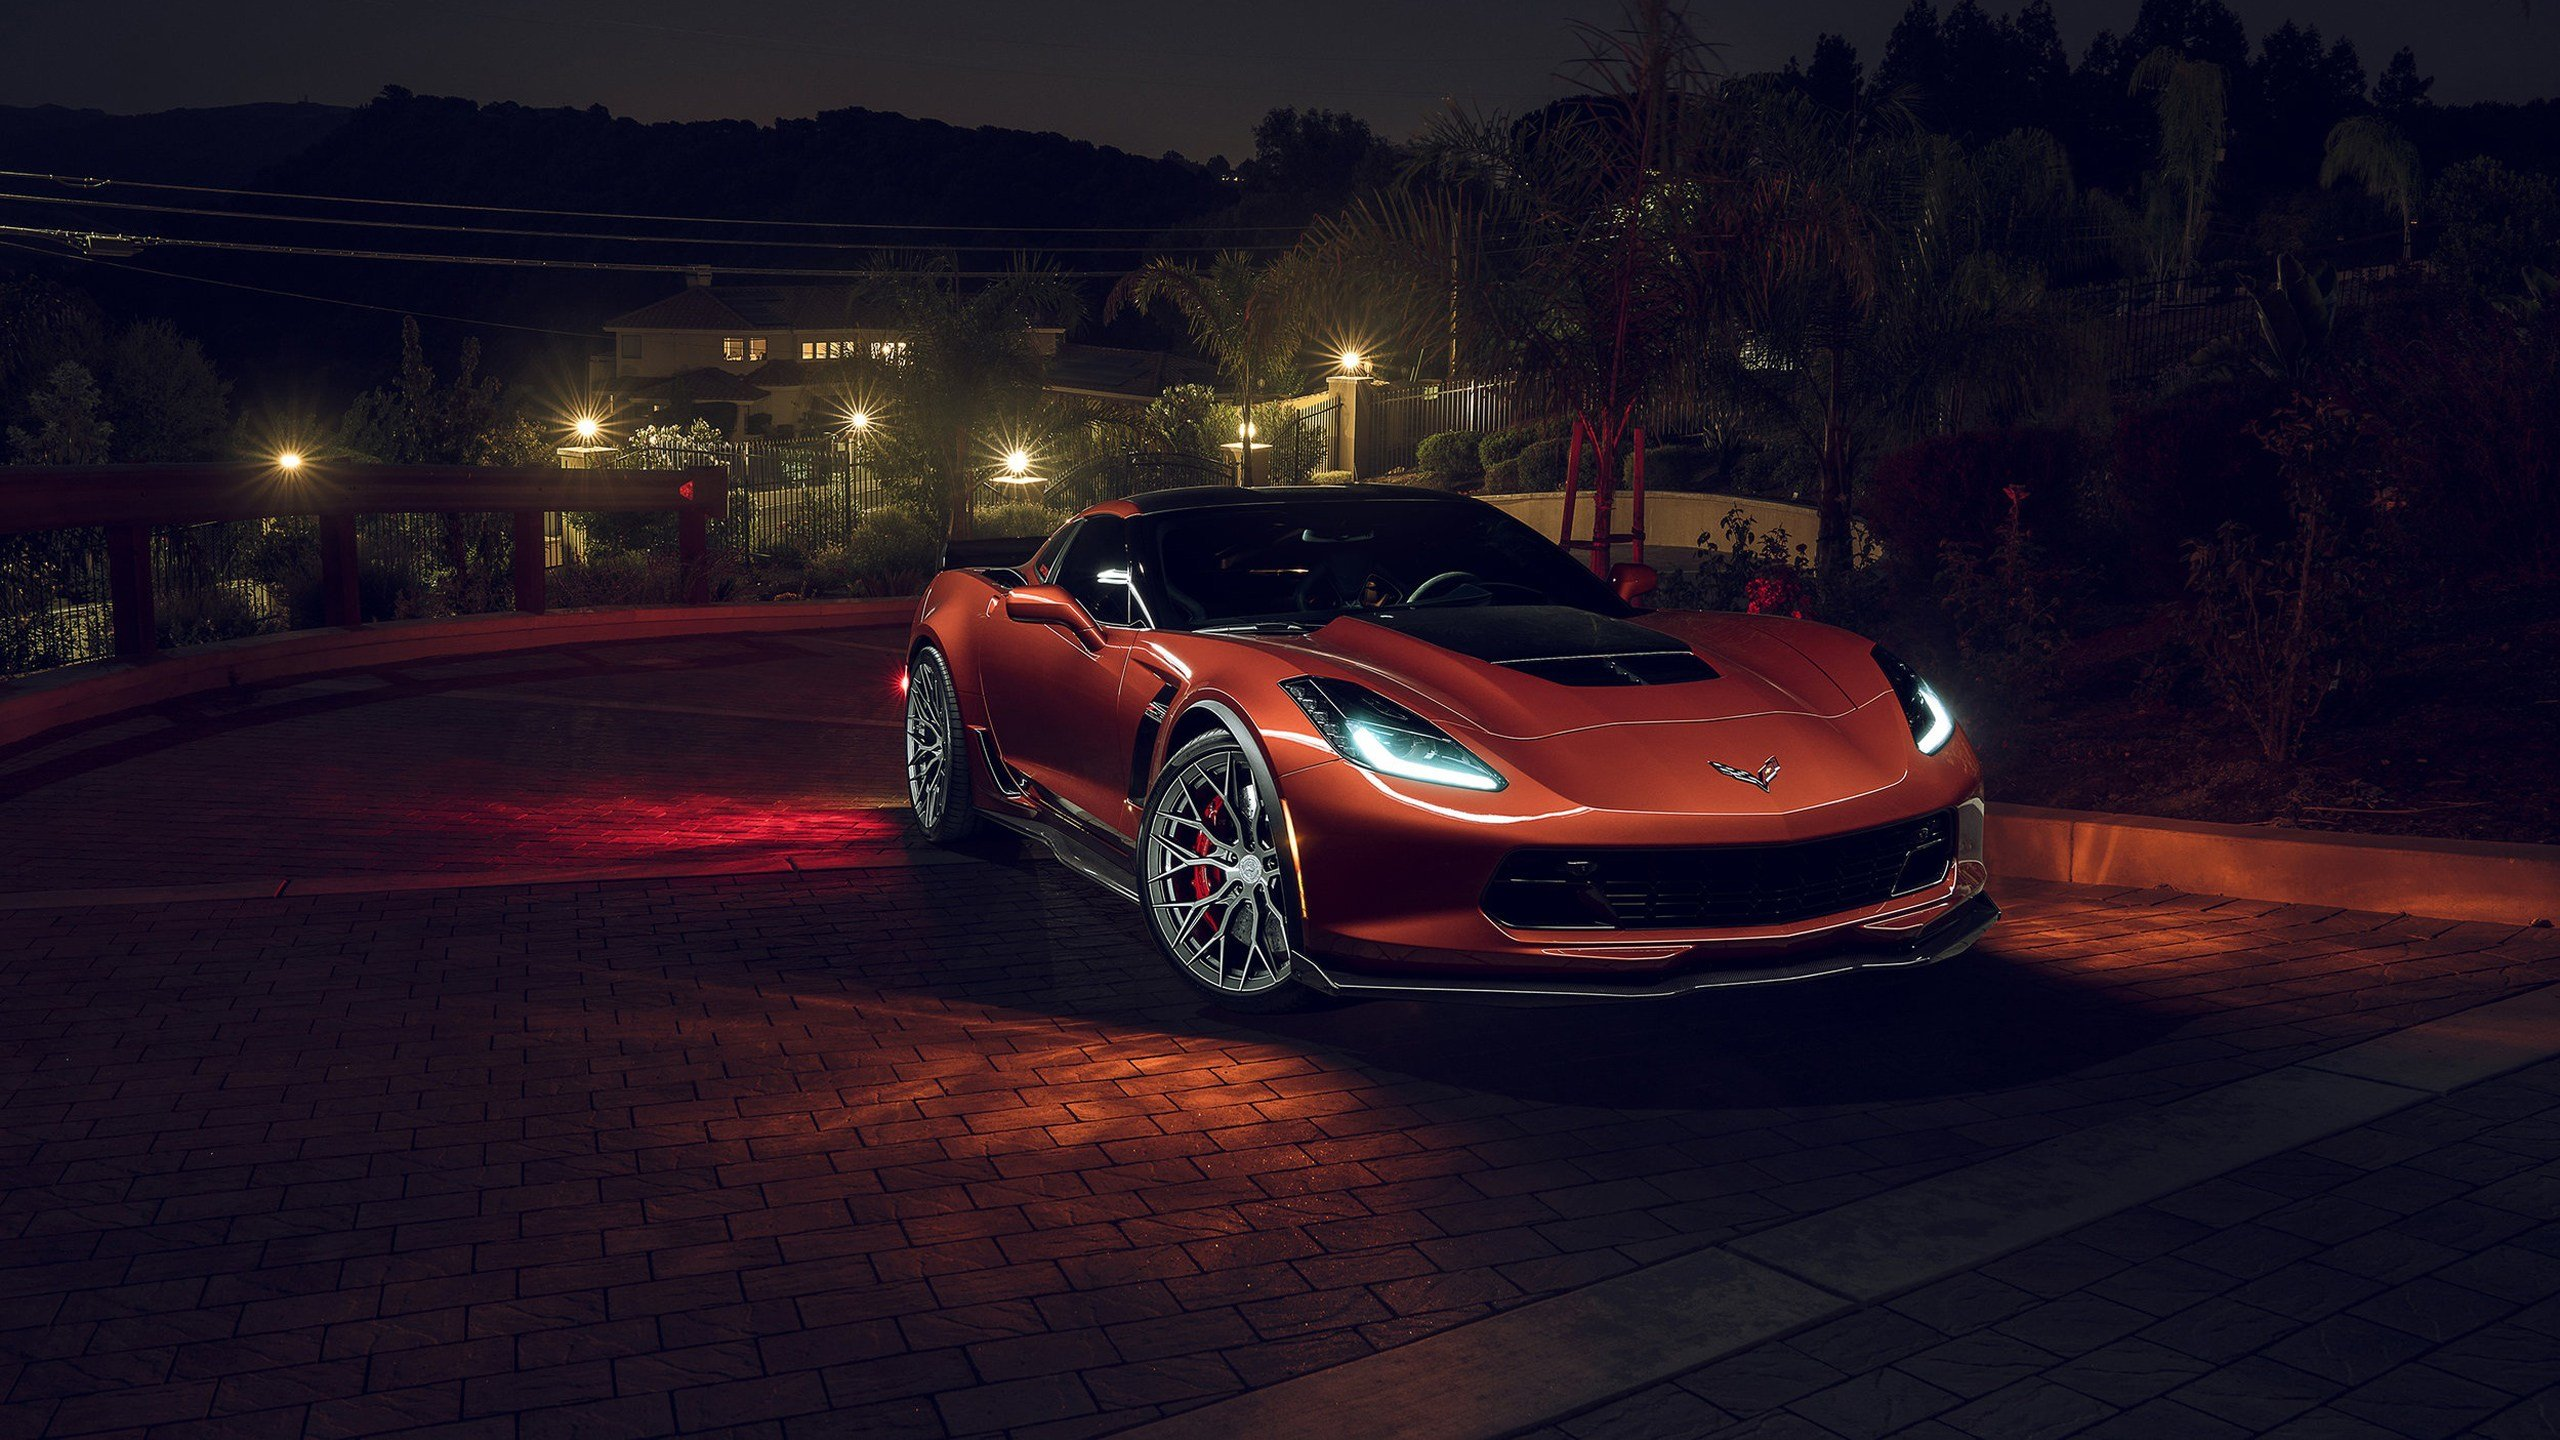 New 2018 Chevrolet Corvette Z06 Wallpaper Hd Car Wallpapers On This Month